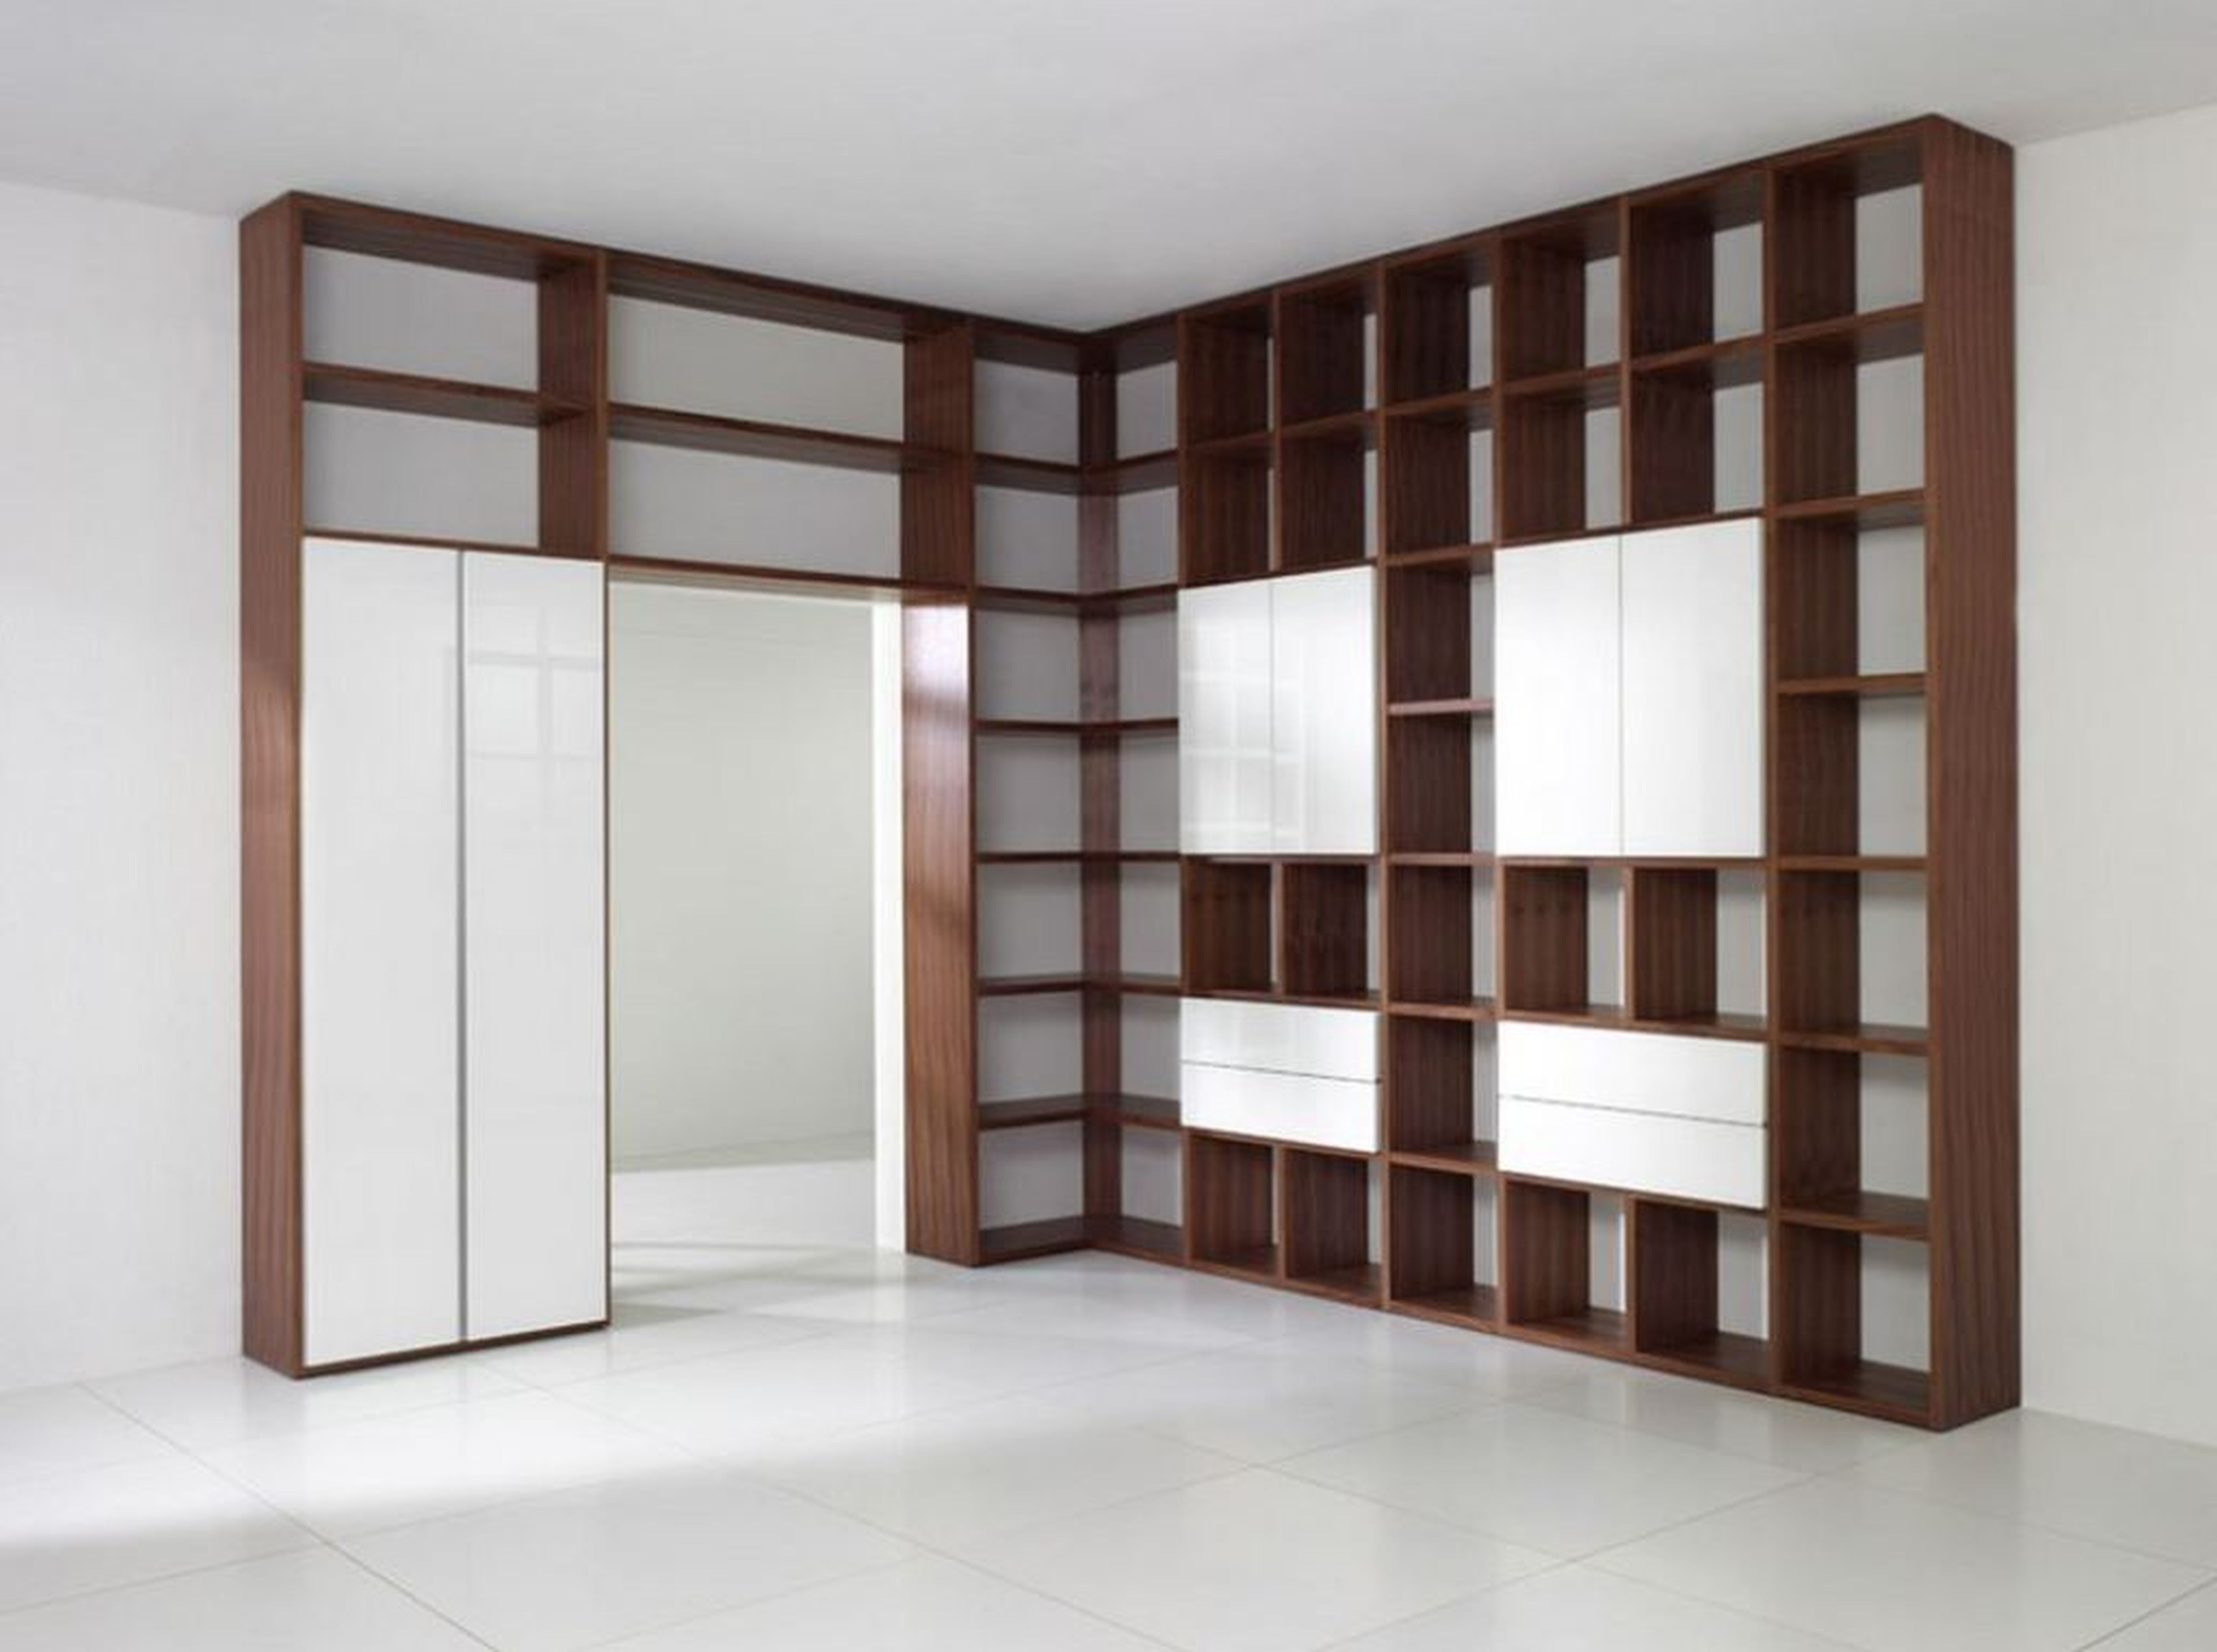 Astounding White Wooden Library Shelves bined With Brown Ladder